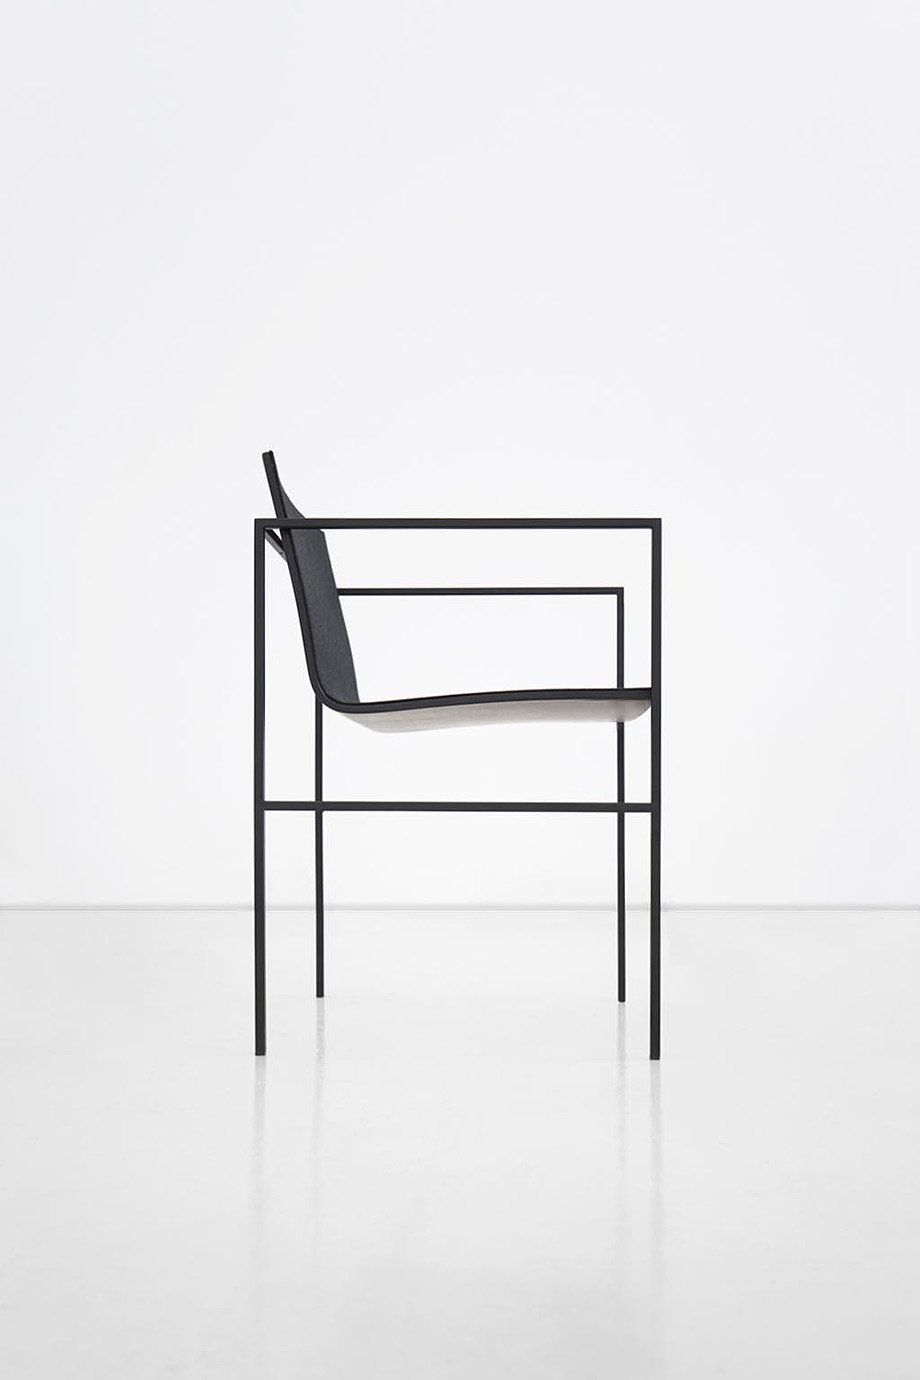 silla a-collection de fran silvestre y capdell (2)